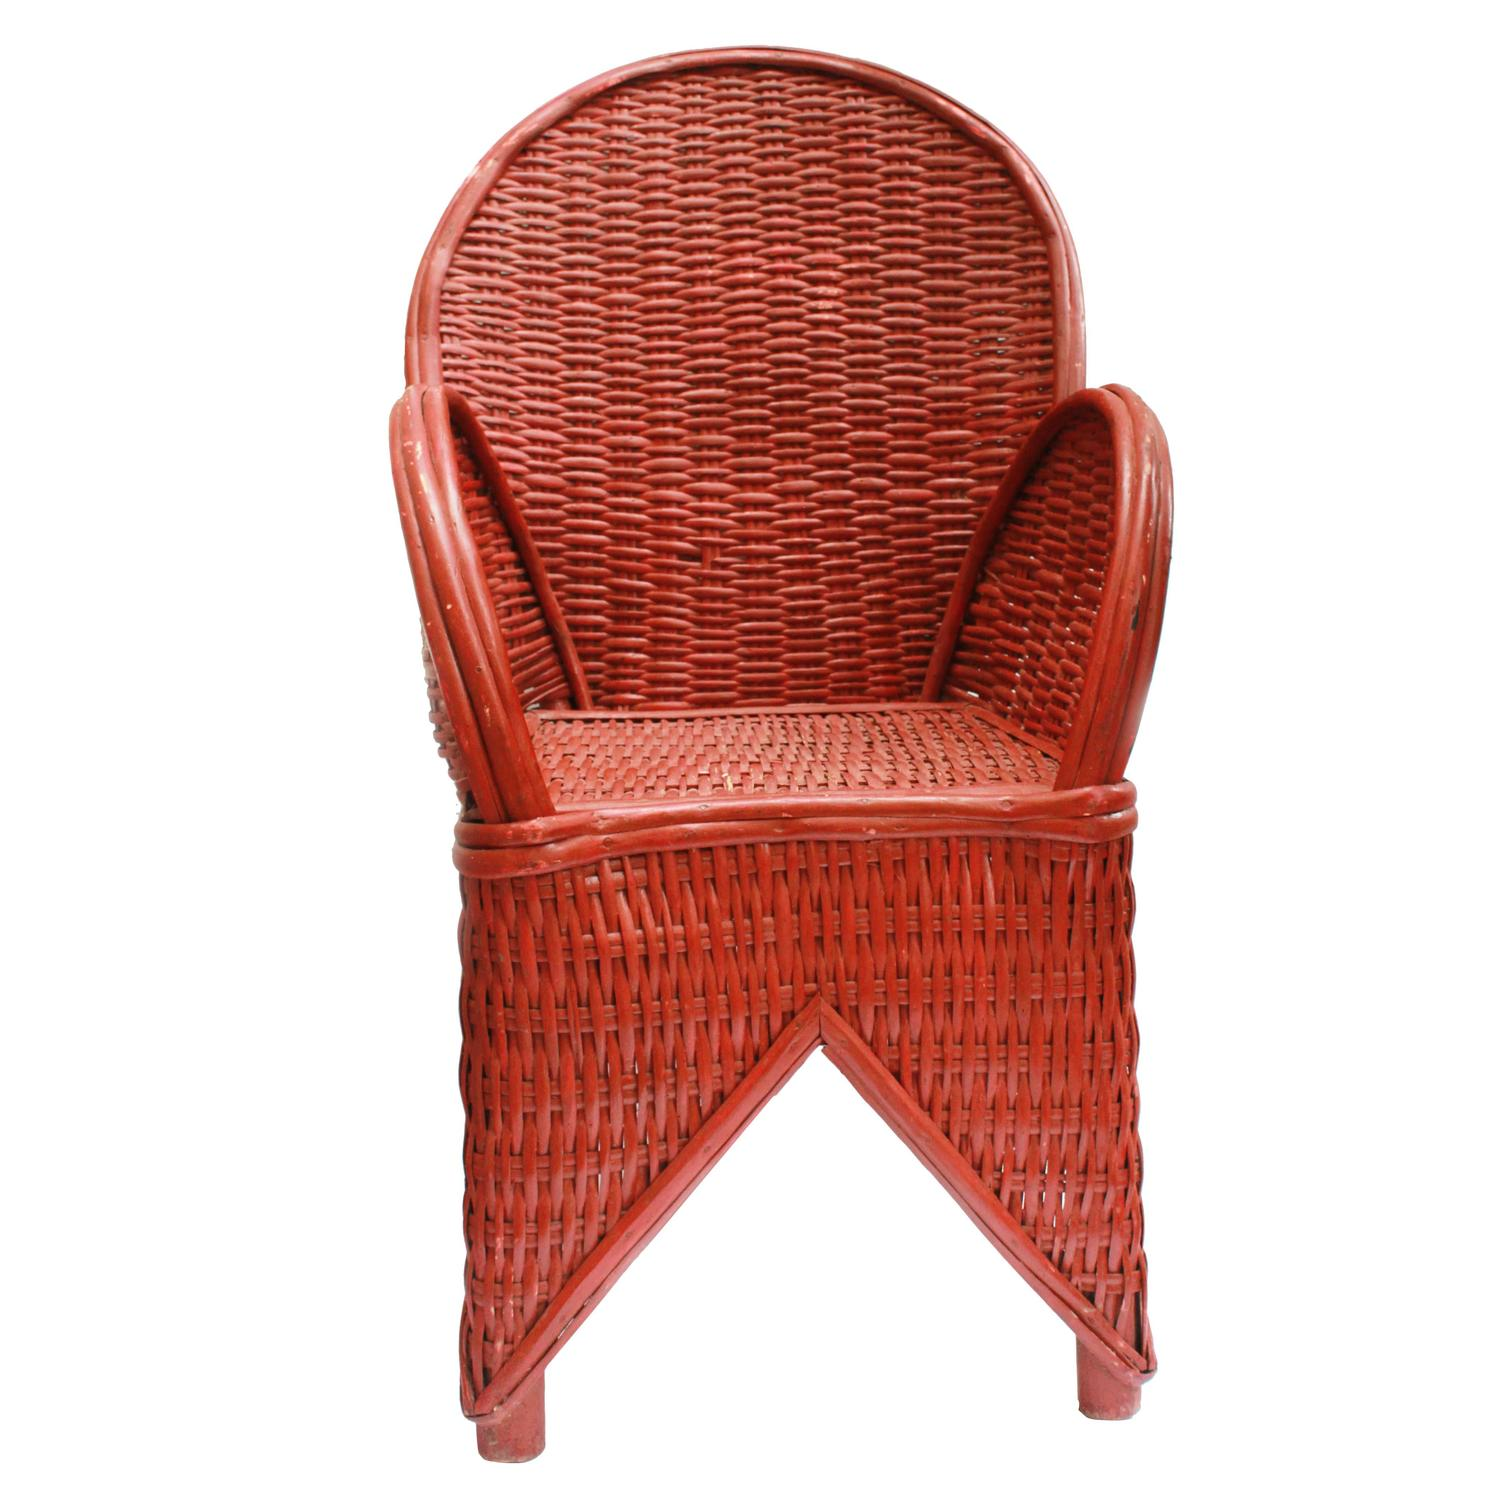 Red Wicker Chair Handmade in Morocco For Sale at 1stdibs